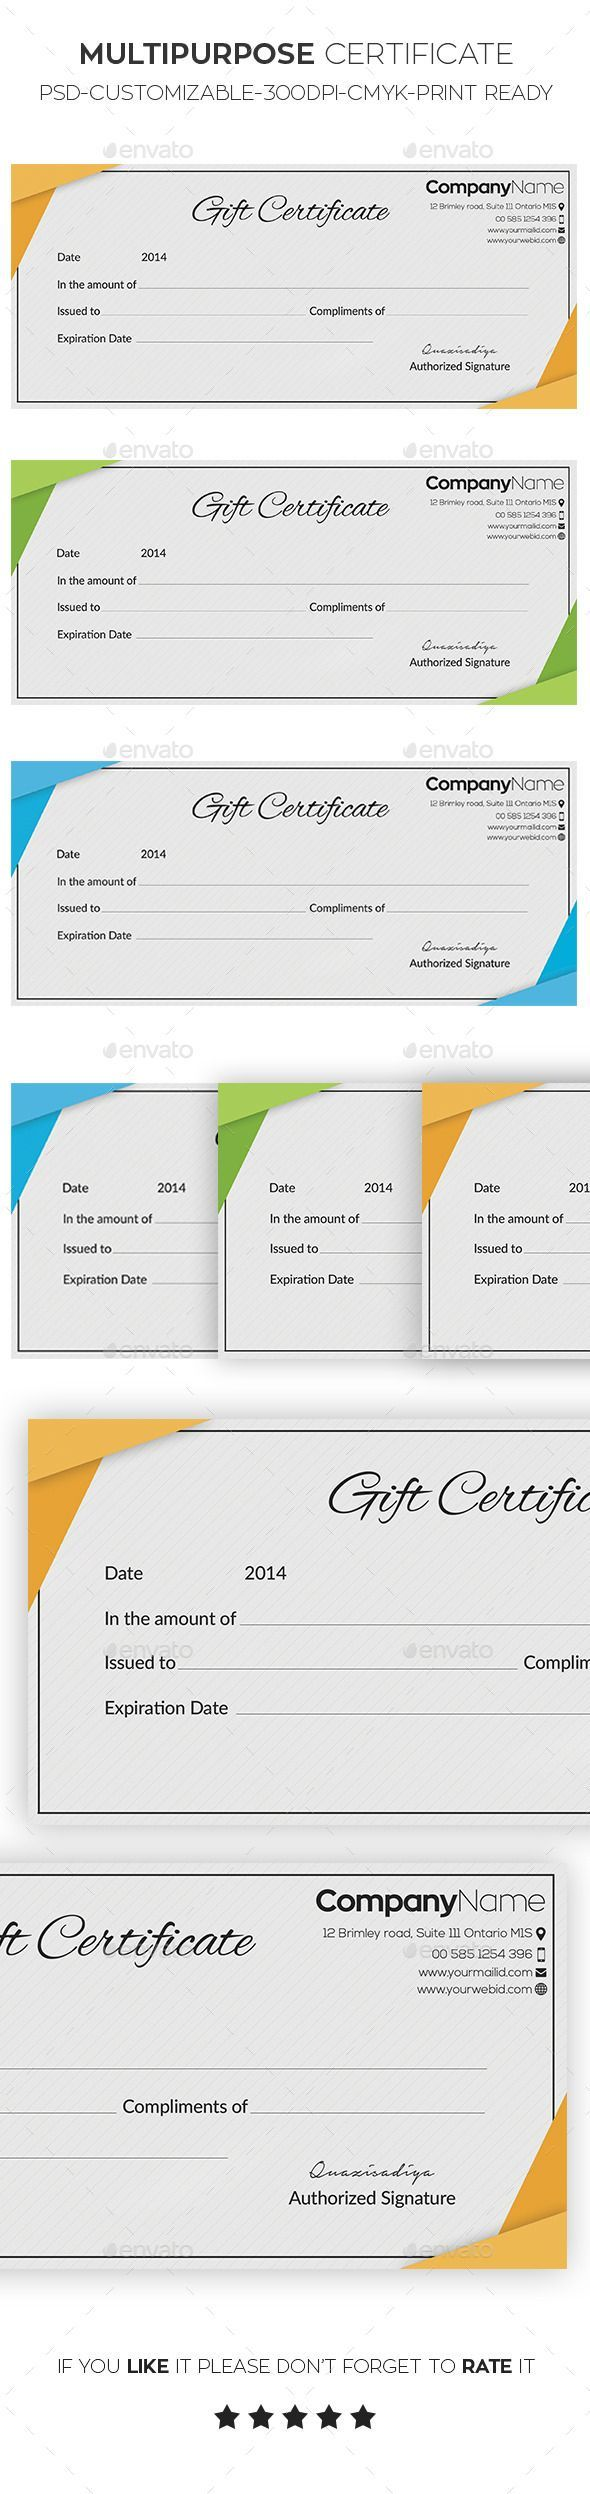 Best 25 website certificate ideas on pinterest certificate of gift certificate template psd download here httpgraphicriver xflitez Images